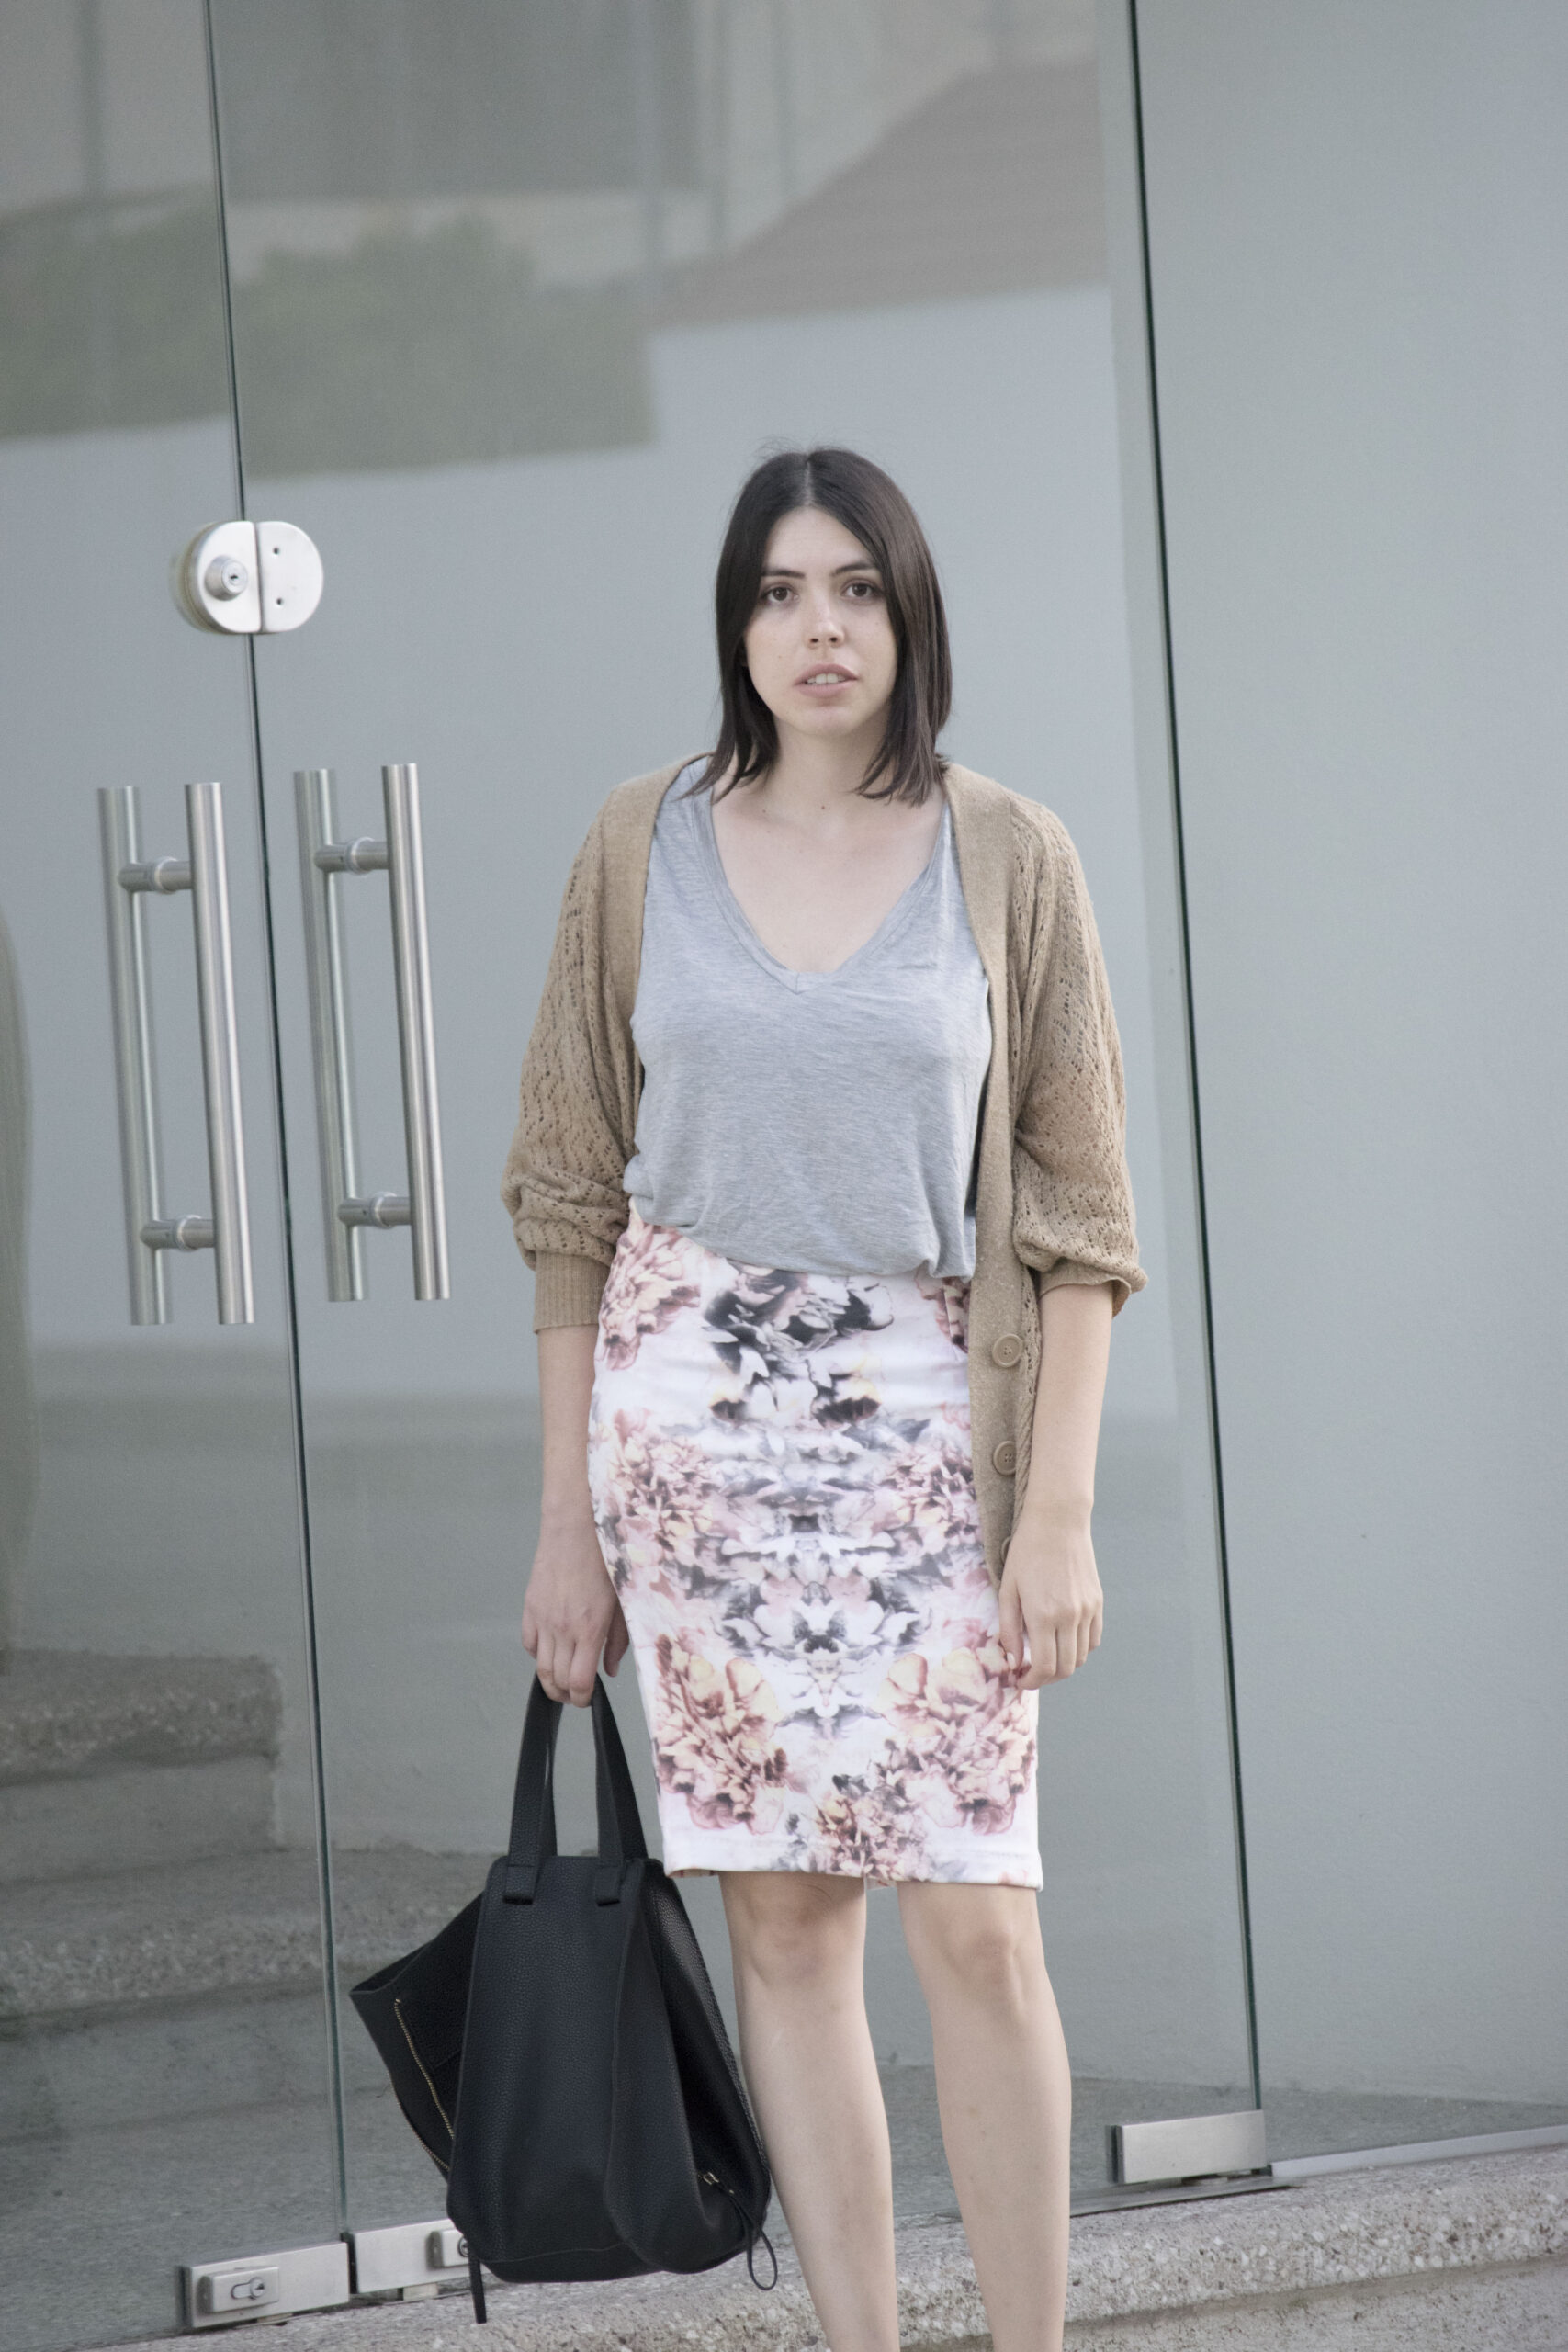 daniela soriano, outfit, white canvas sneakers, black bag, loewe bag, dupe, camel cardigan, open cardigan, pencil skirt, printed, floral print, outfit, ideas,